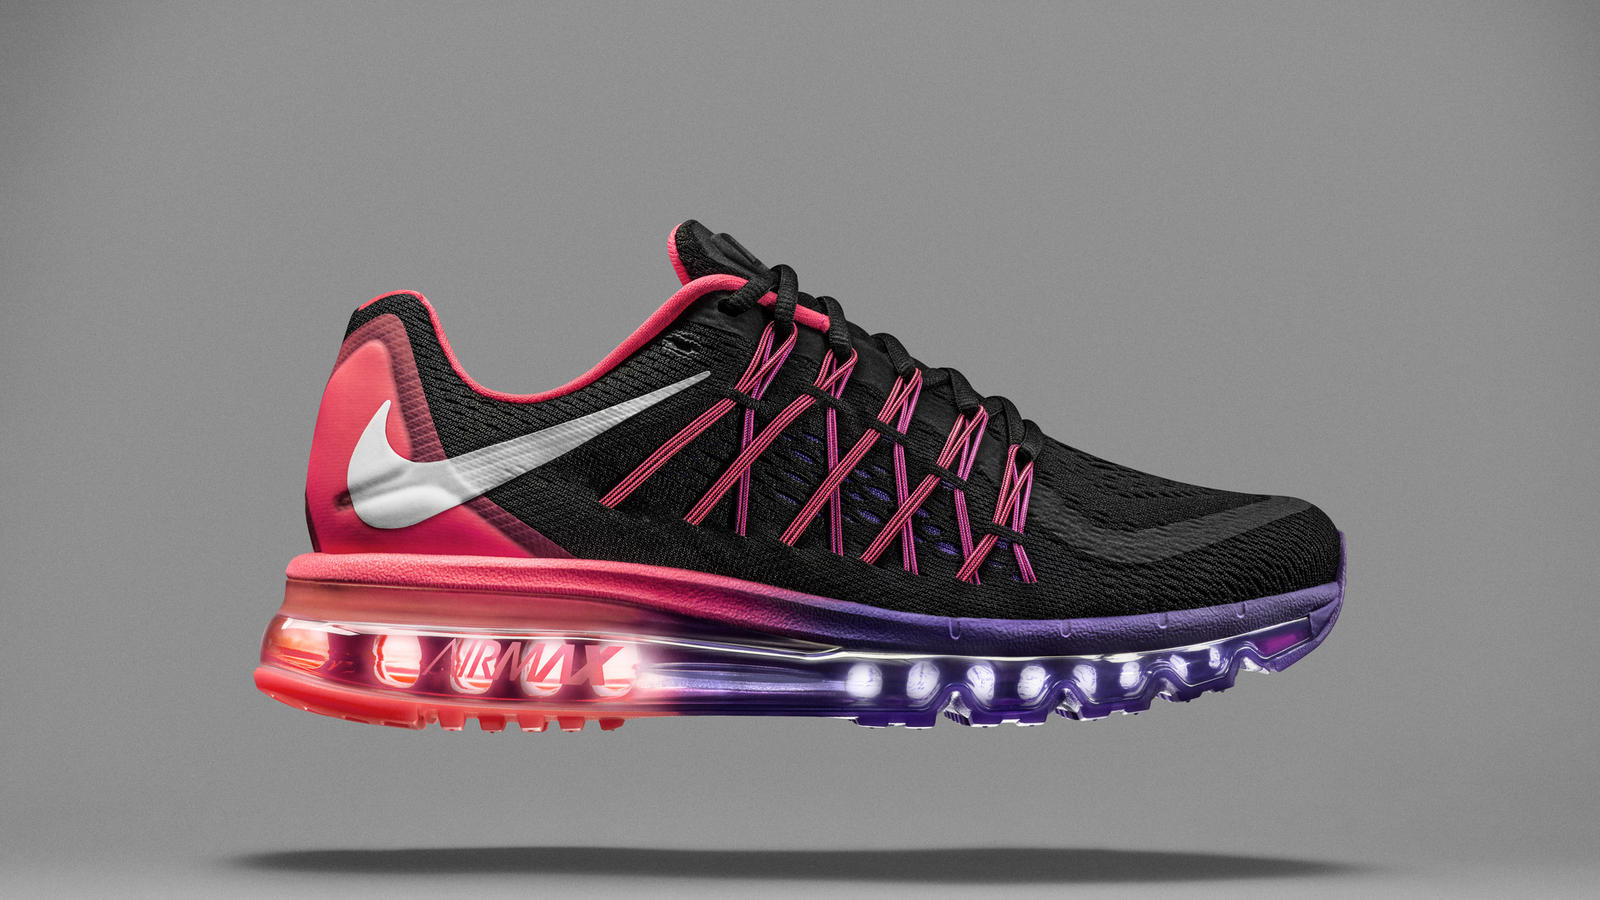 grand choix de e27c1 5515d Nike Air Max 2015 : Nike Sneakers Online at Best Prices ...